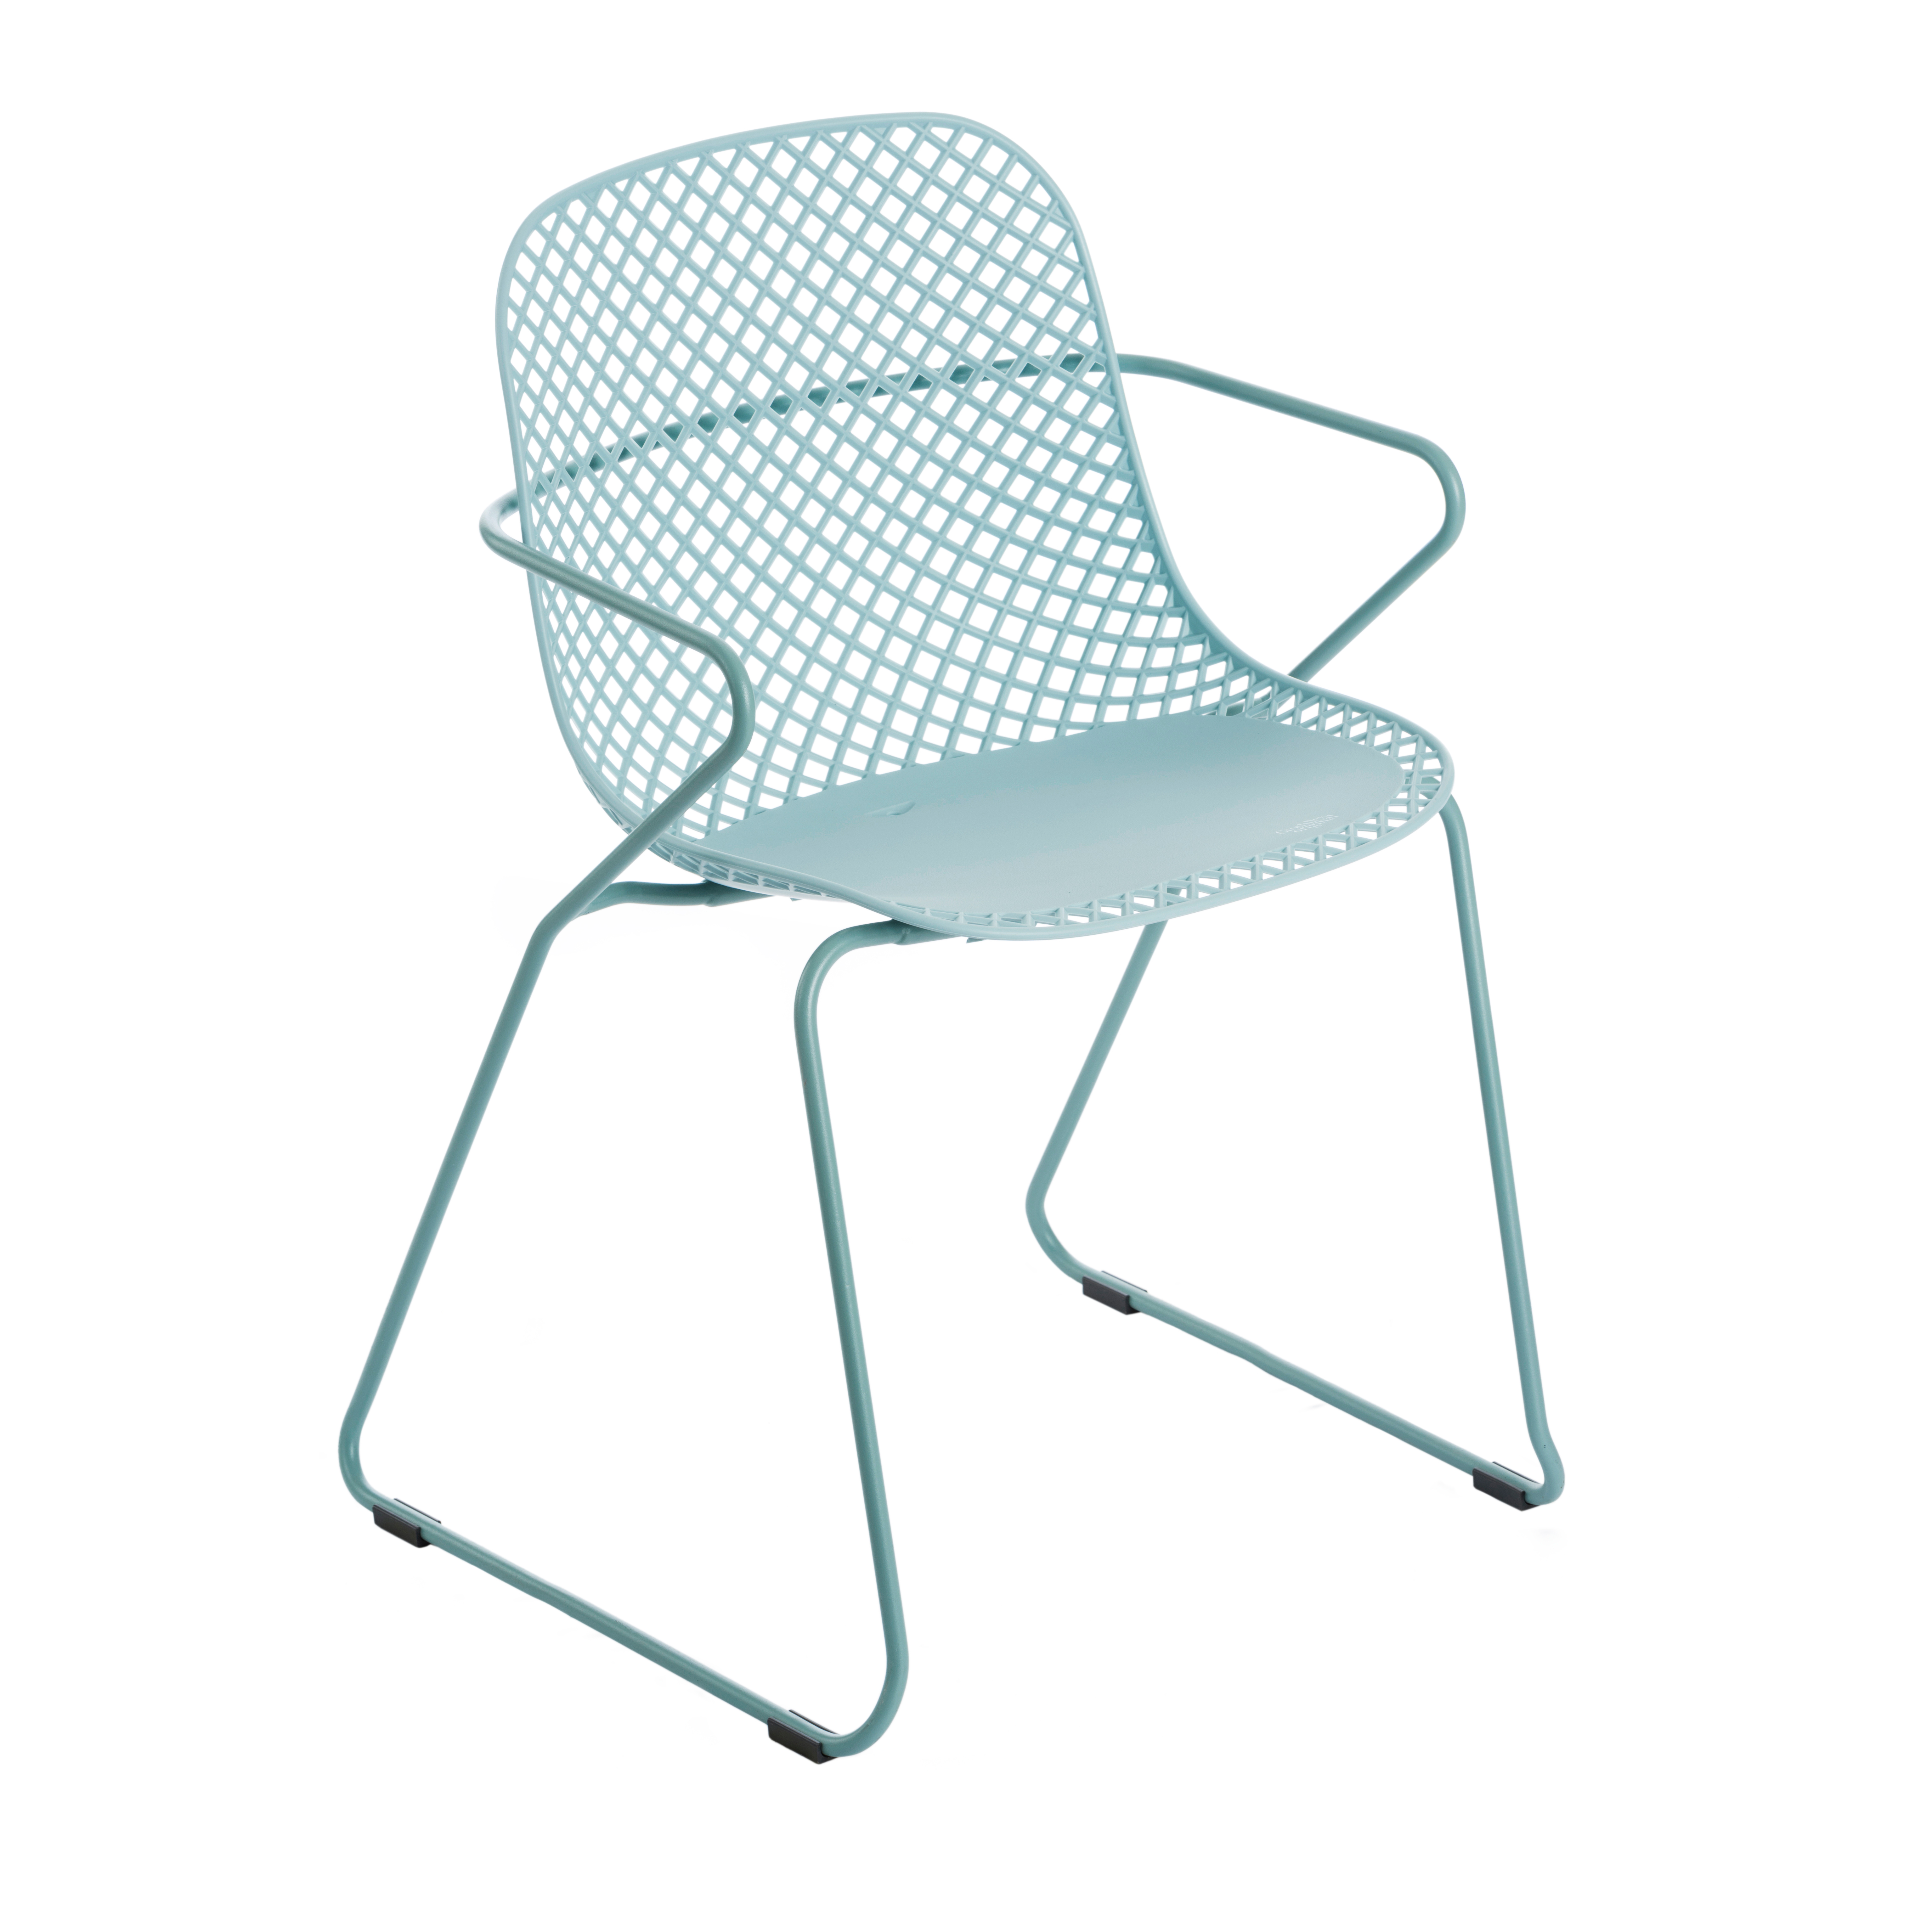 Grosfillex US137711 chair, armchair, stacking, outdoor